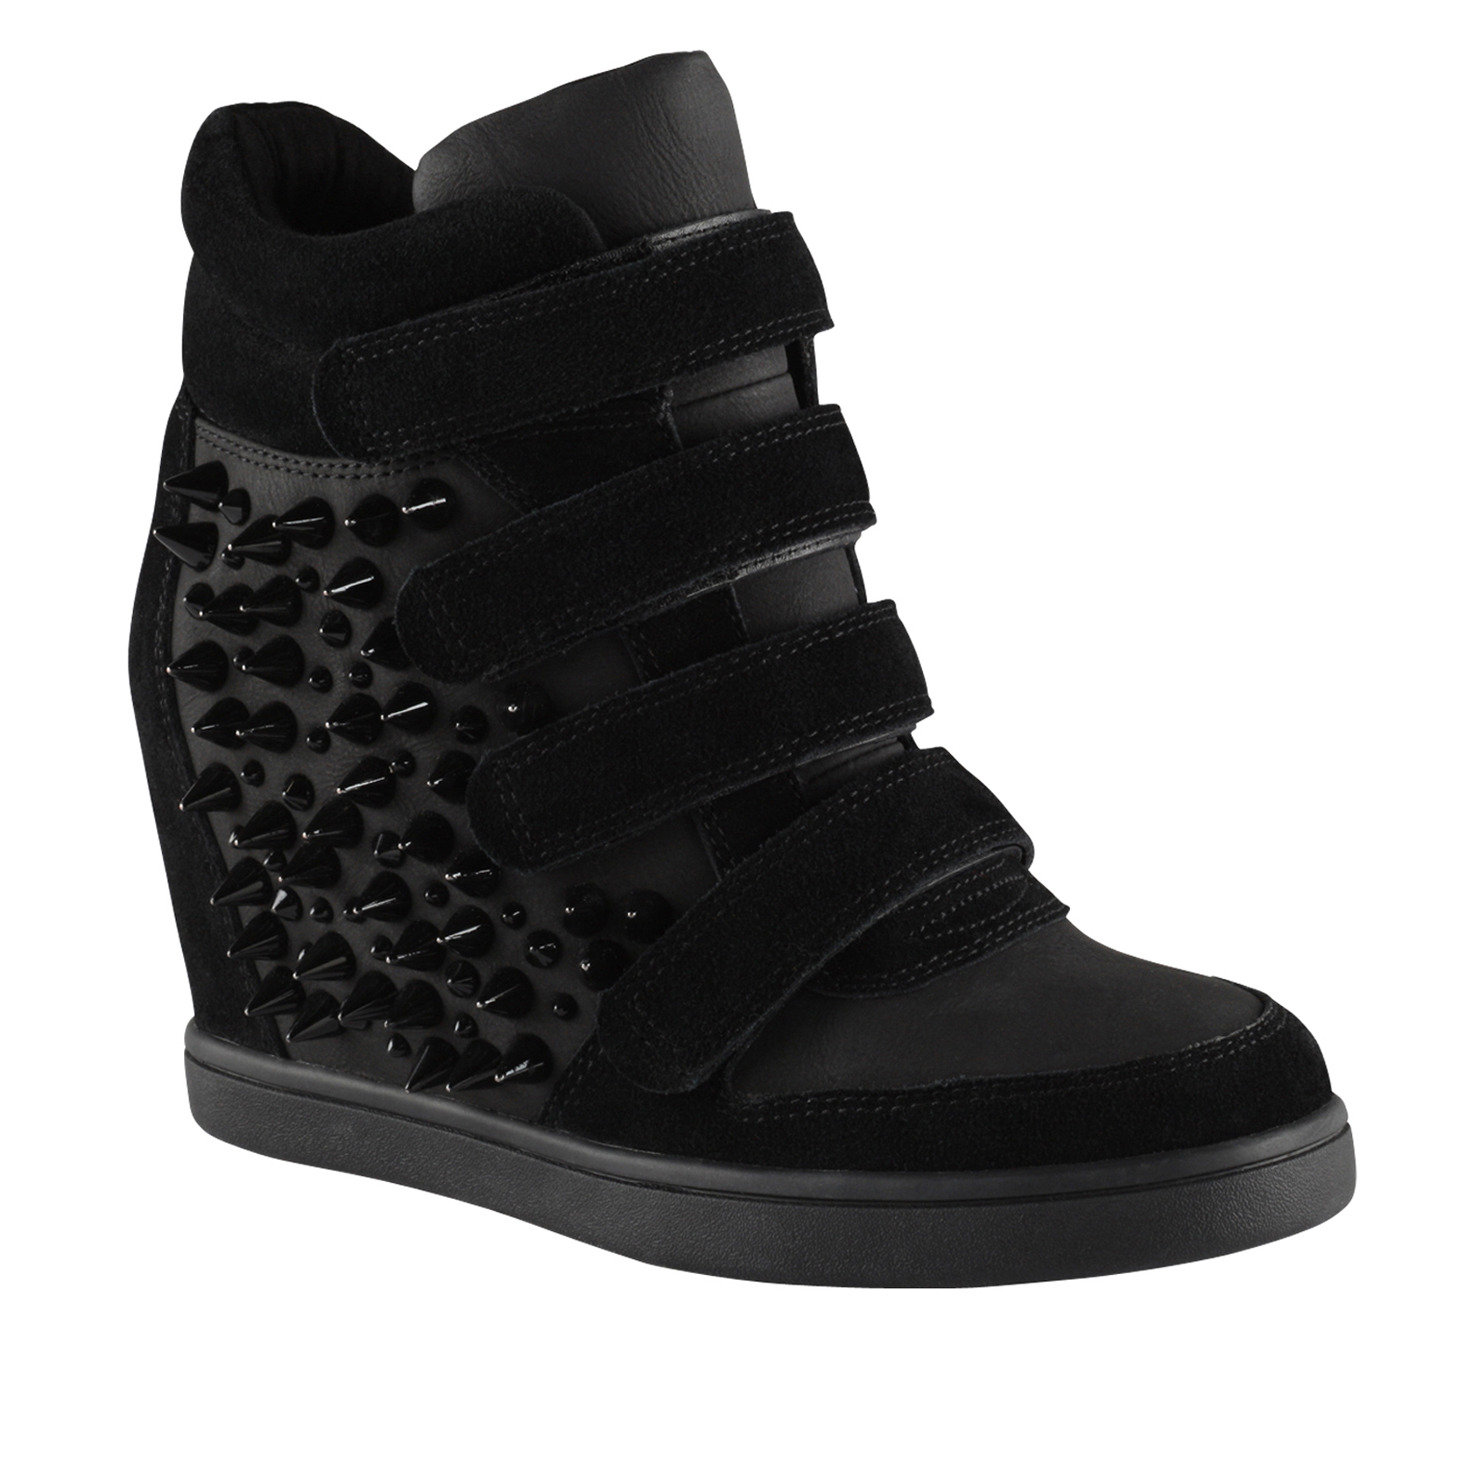 GRAZIANA - women&#x27;s sneakers shoes for sale at ALDO Shoes.